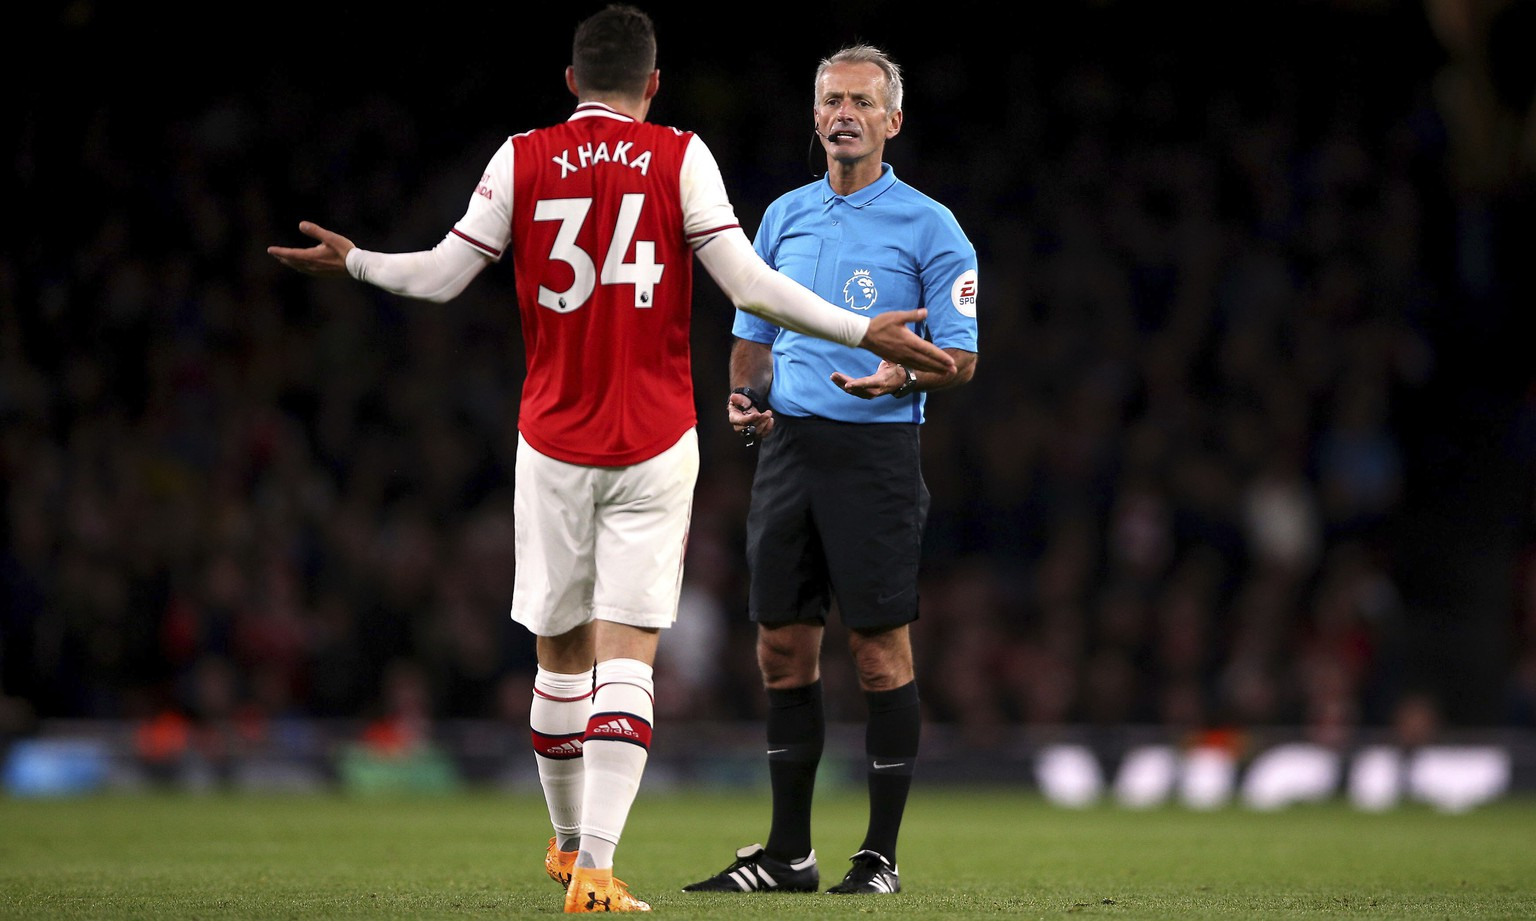 Arsenal's Granit Xhaka speaks to referee Martin Atkinson during the English Premier League soccer match at the Emirates Stadium, London, Sunday Oct. 27, 2019. (Nigel French/PA via AP)